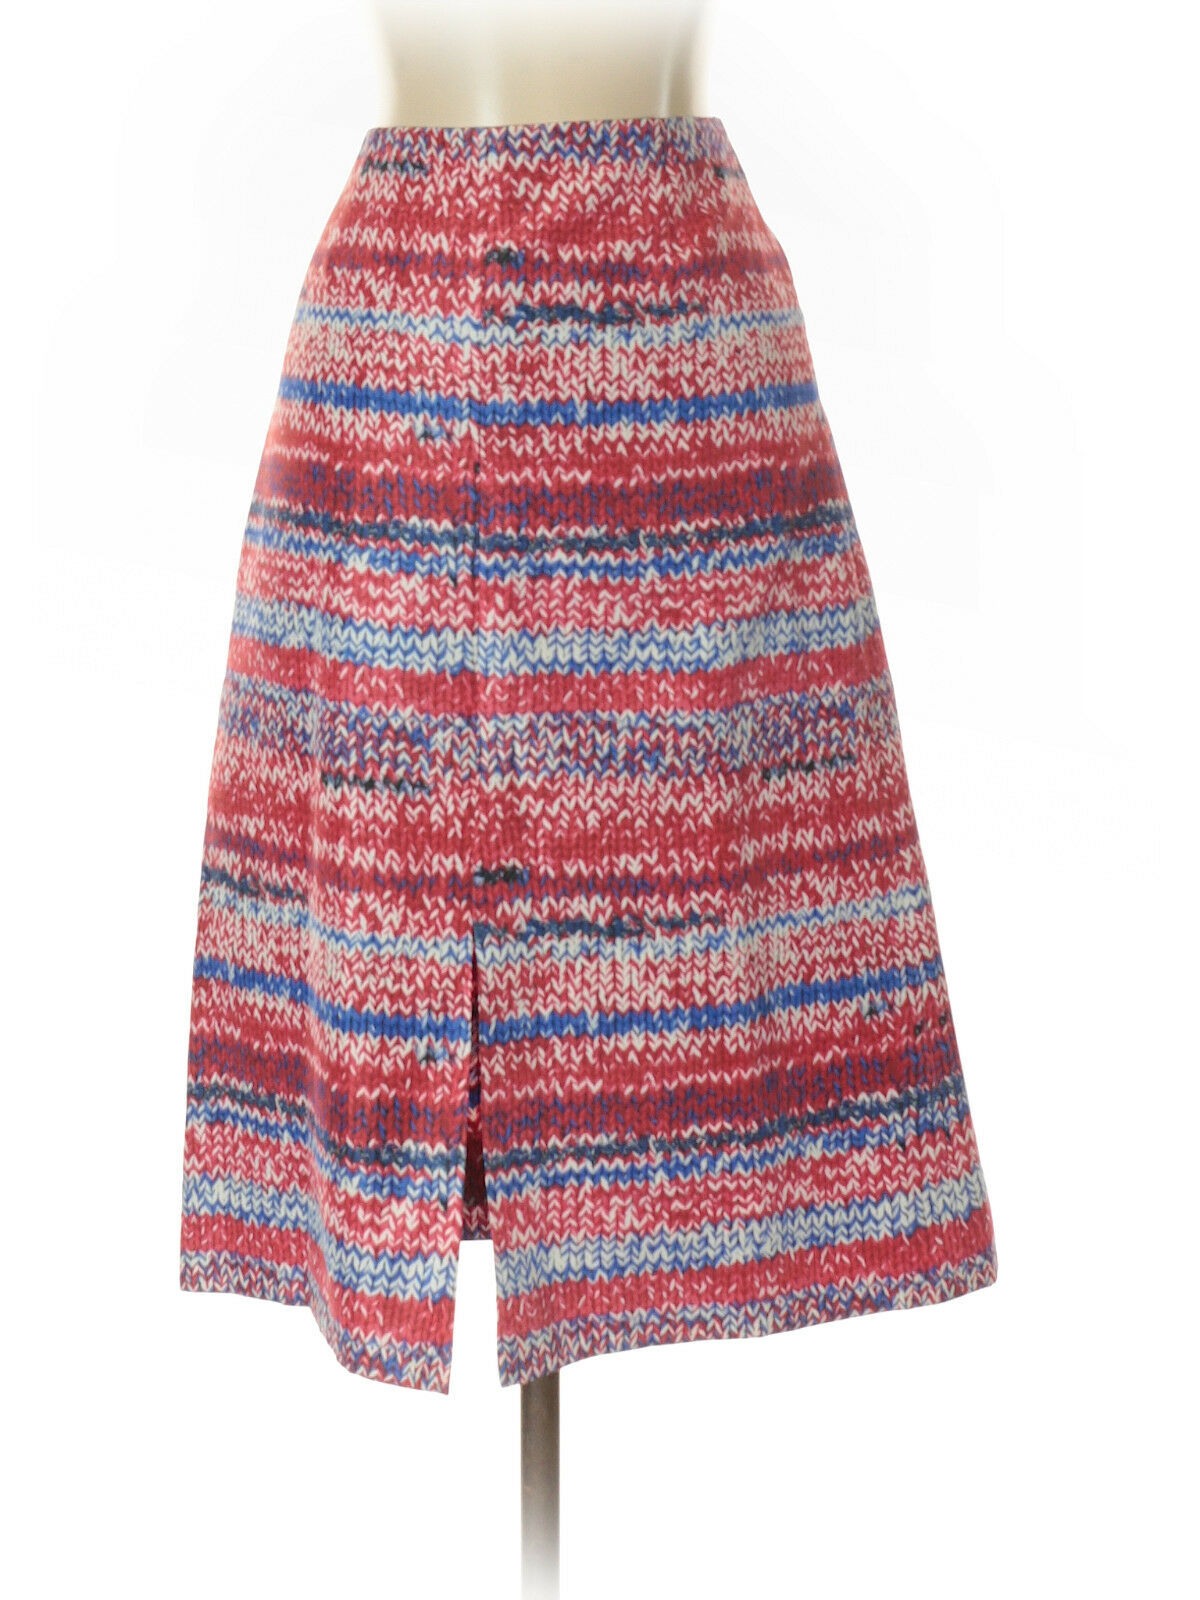 Tory Burch Red  Knit Print  Red White bluee A-Line Skirt, Size 0, NWT   275